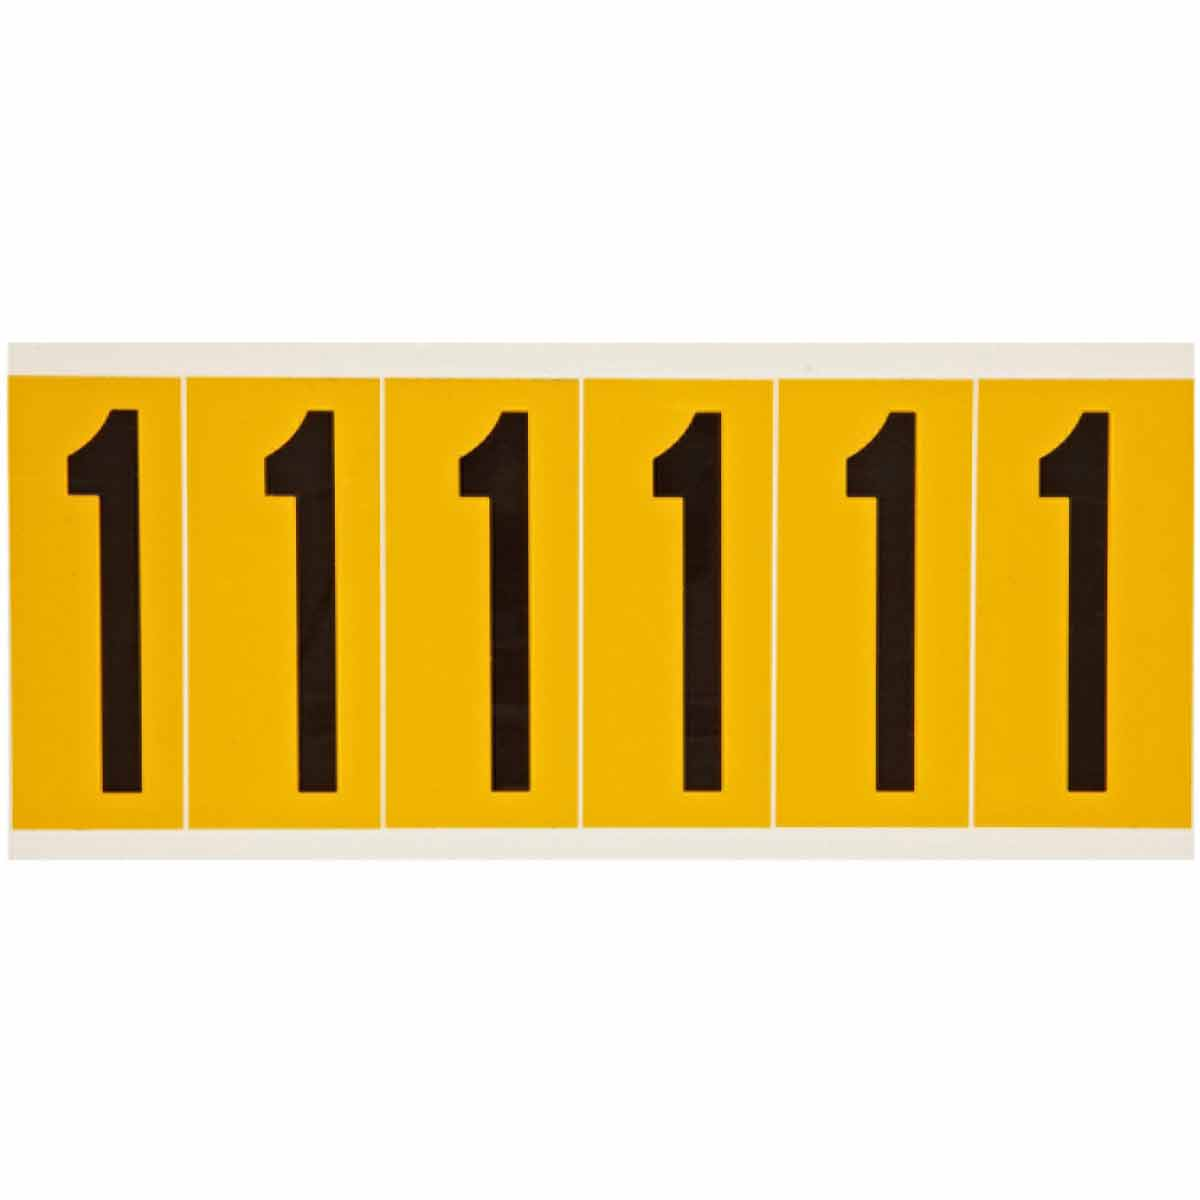 Brady® 1550-1 Non-Reflective Standard Number Label, Black 1 Character, 2.938 in H, Yellow Background, B-946 Vinyl